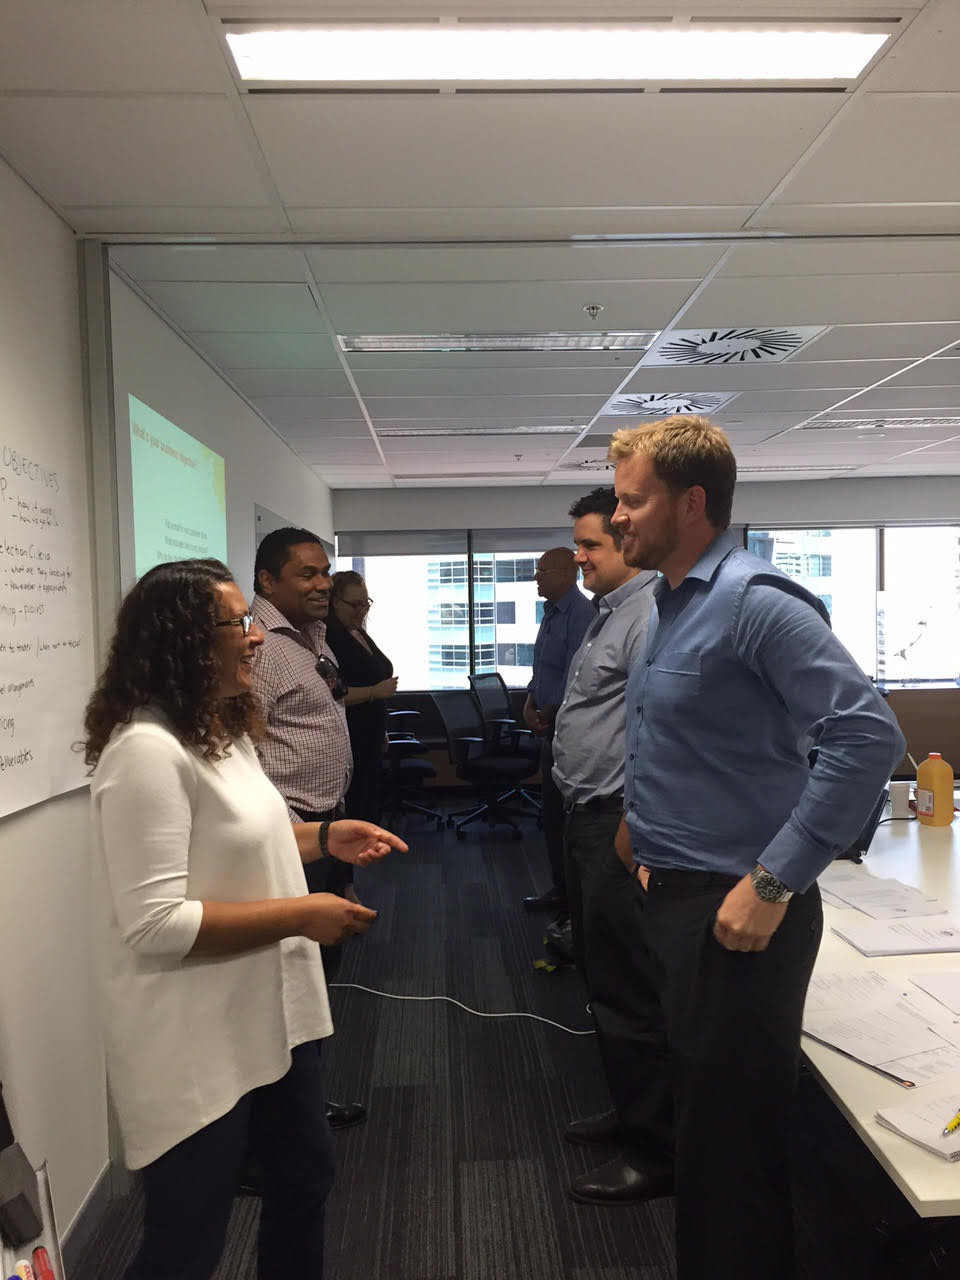 Business owners in Brisbane practising their pitch